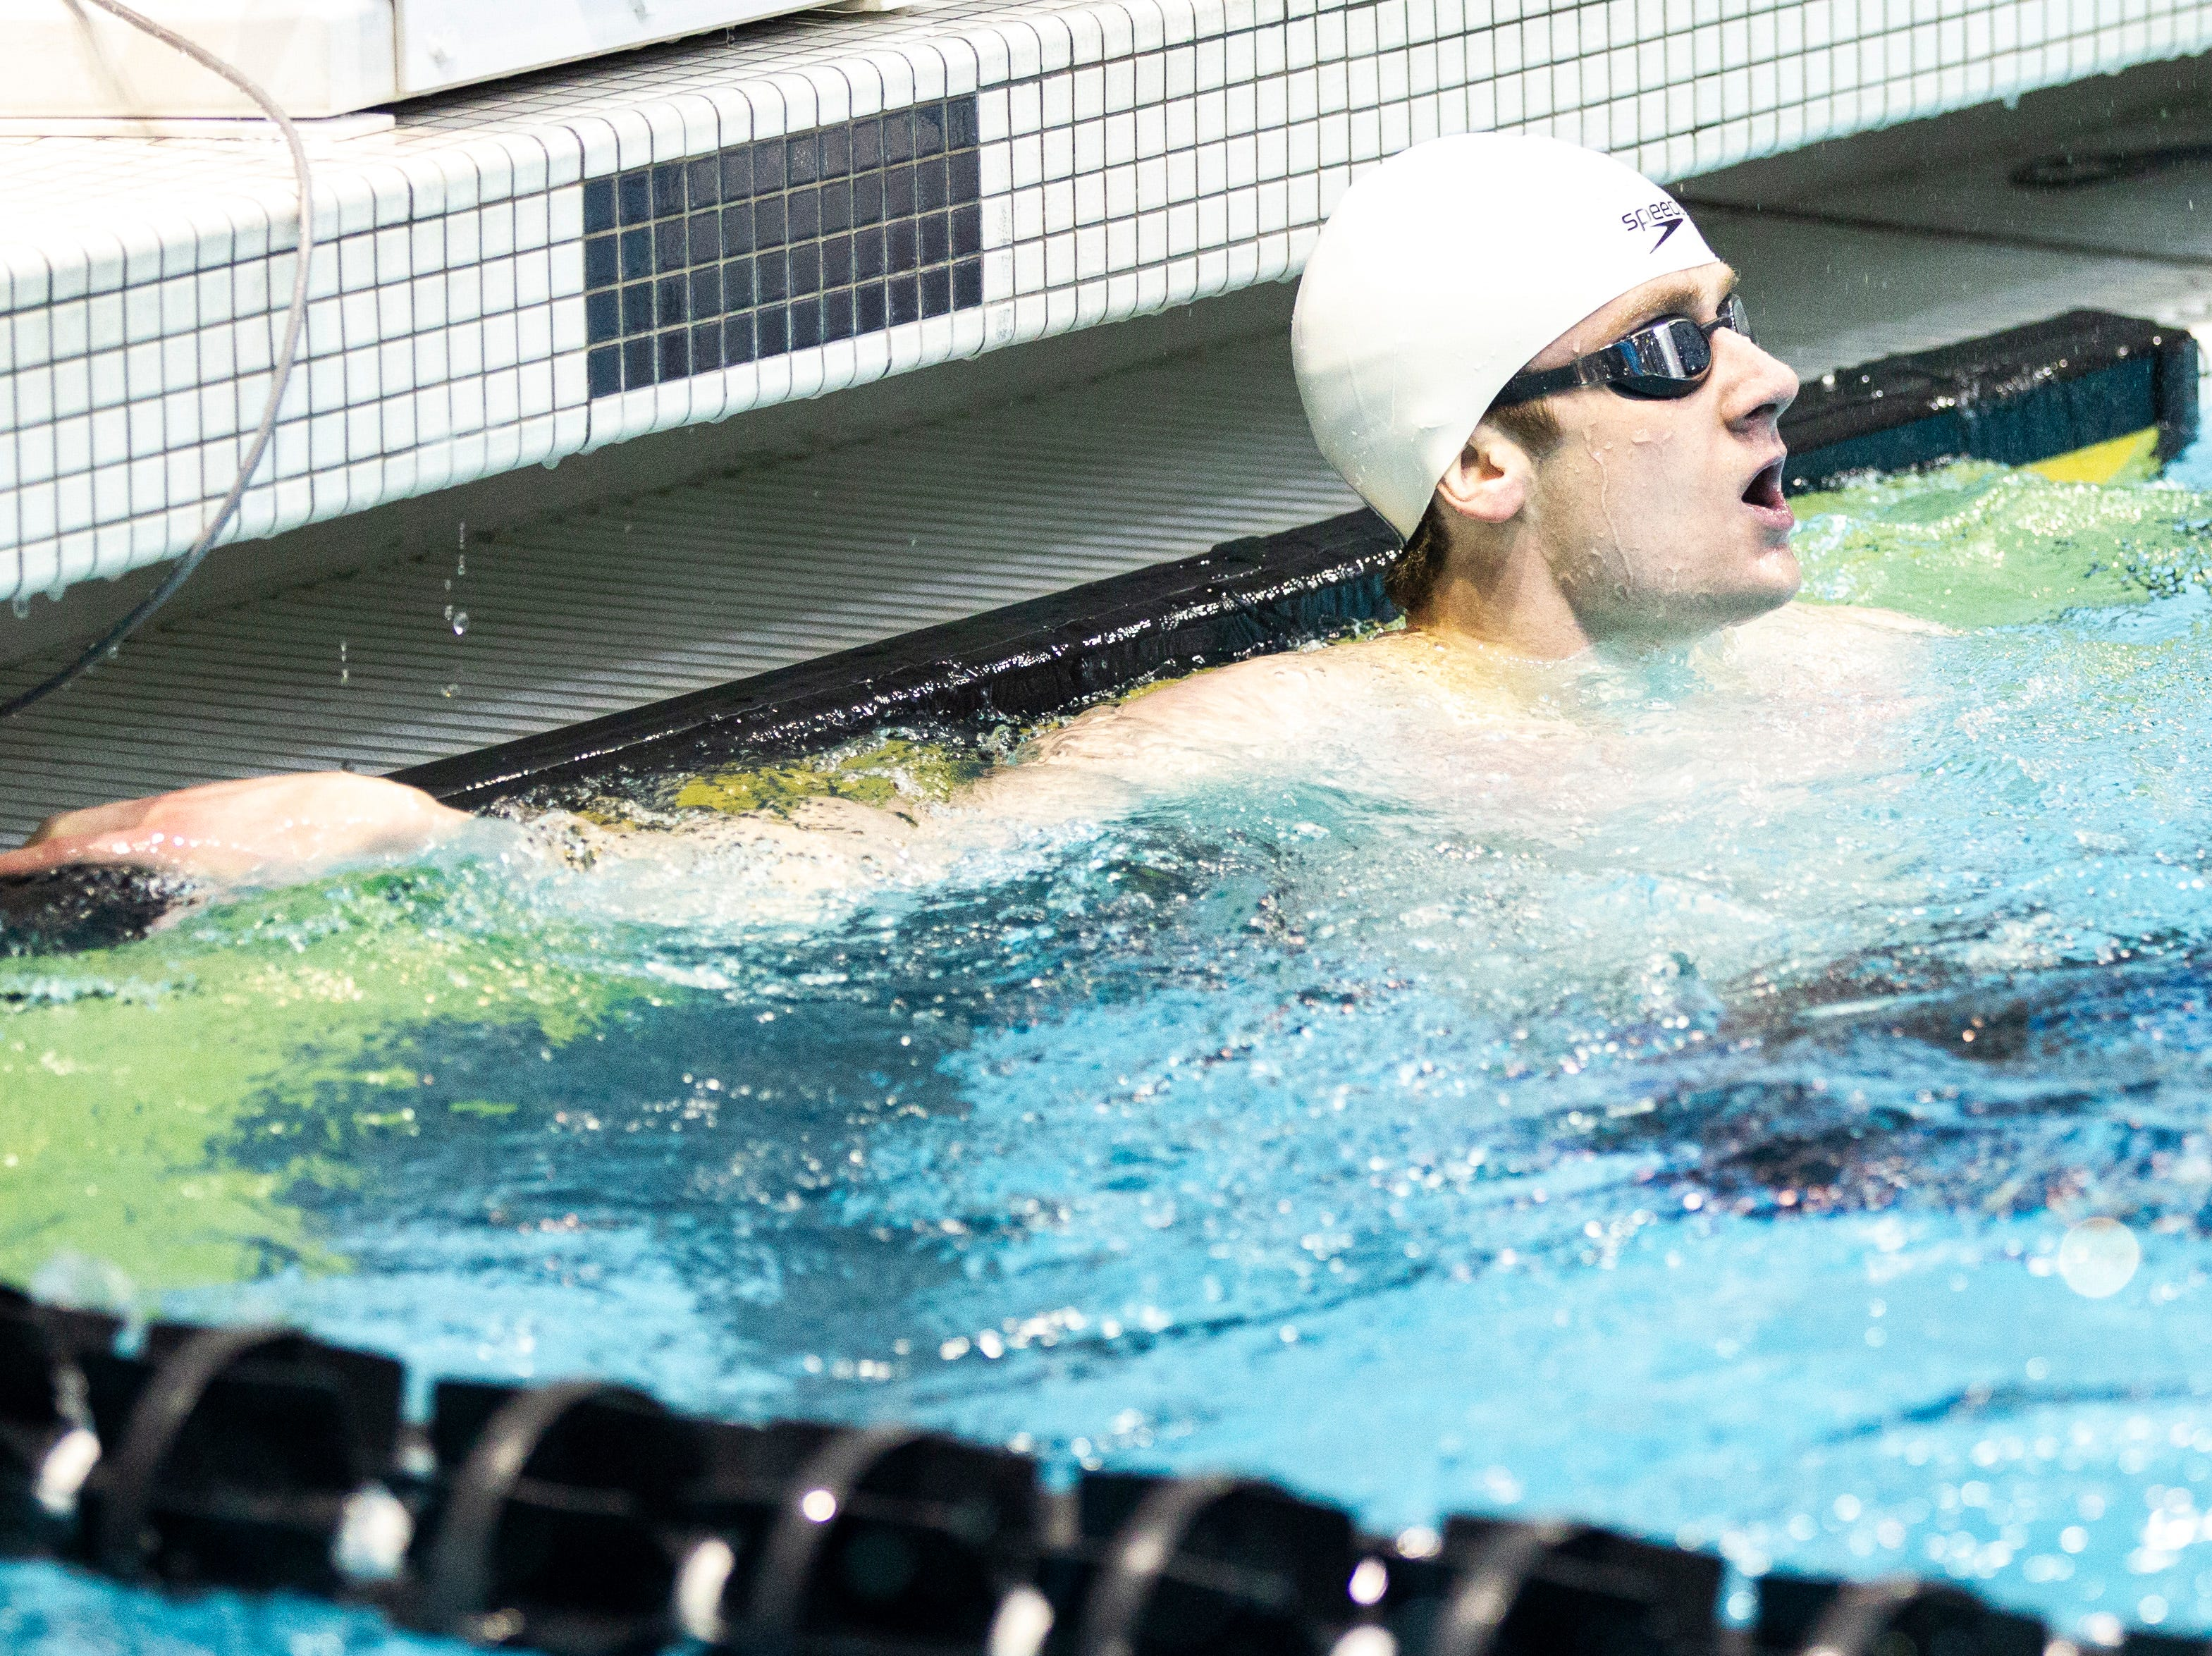 Dowling Catholic senior Nick Chase looks at the scoreboard after finish first in the third heat of 100 yard backstroke during the Iowa boys' state swimming regional championship meet on Saturday, Feb. 9, 2019 at Campus Recreation and Wellness Center on the University of Iowa campus in Iowa City, Iowa. Chase finished first overall, with a time of 50.10.